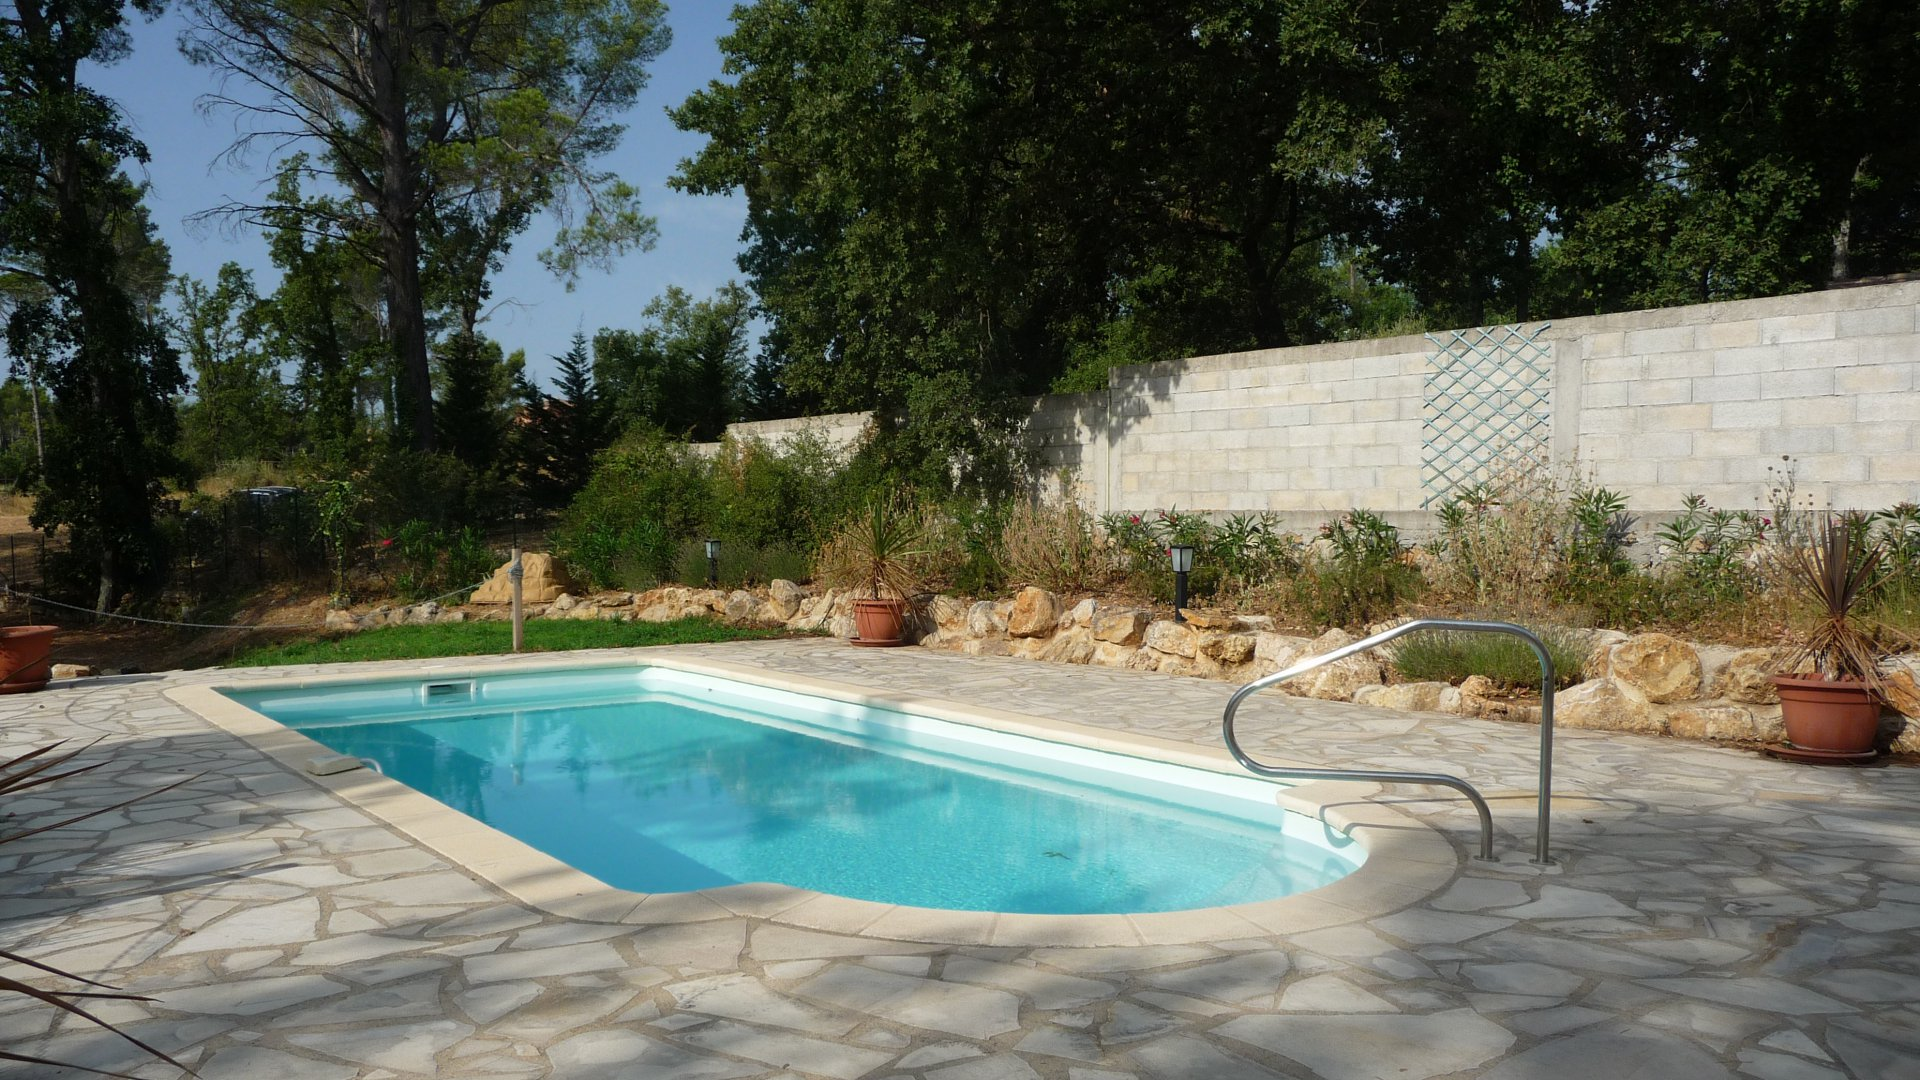 Pays de Fayence recent villa on a plot of 2500m² with a pool